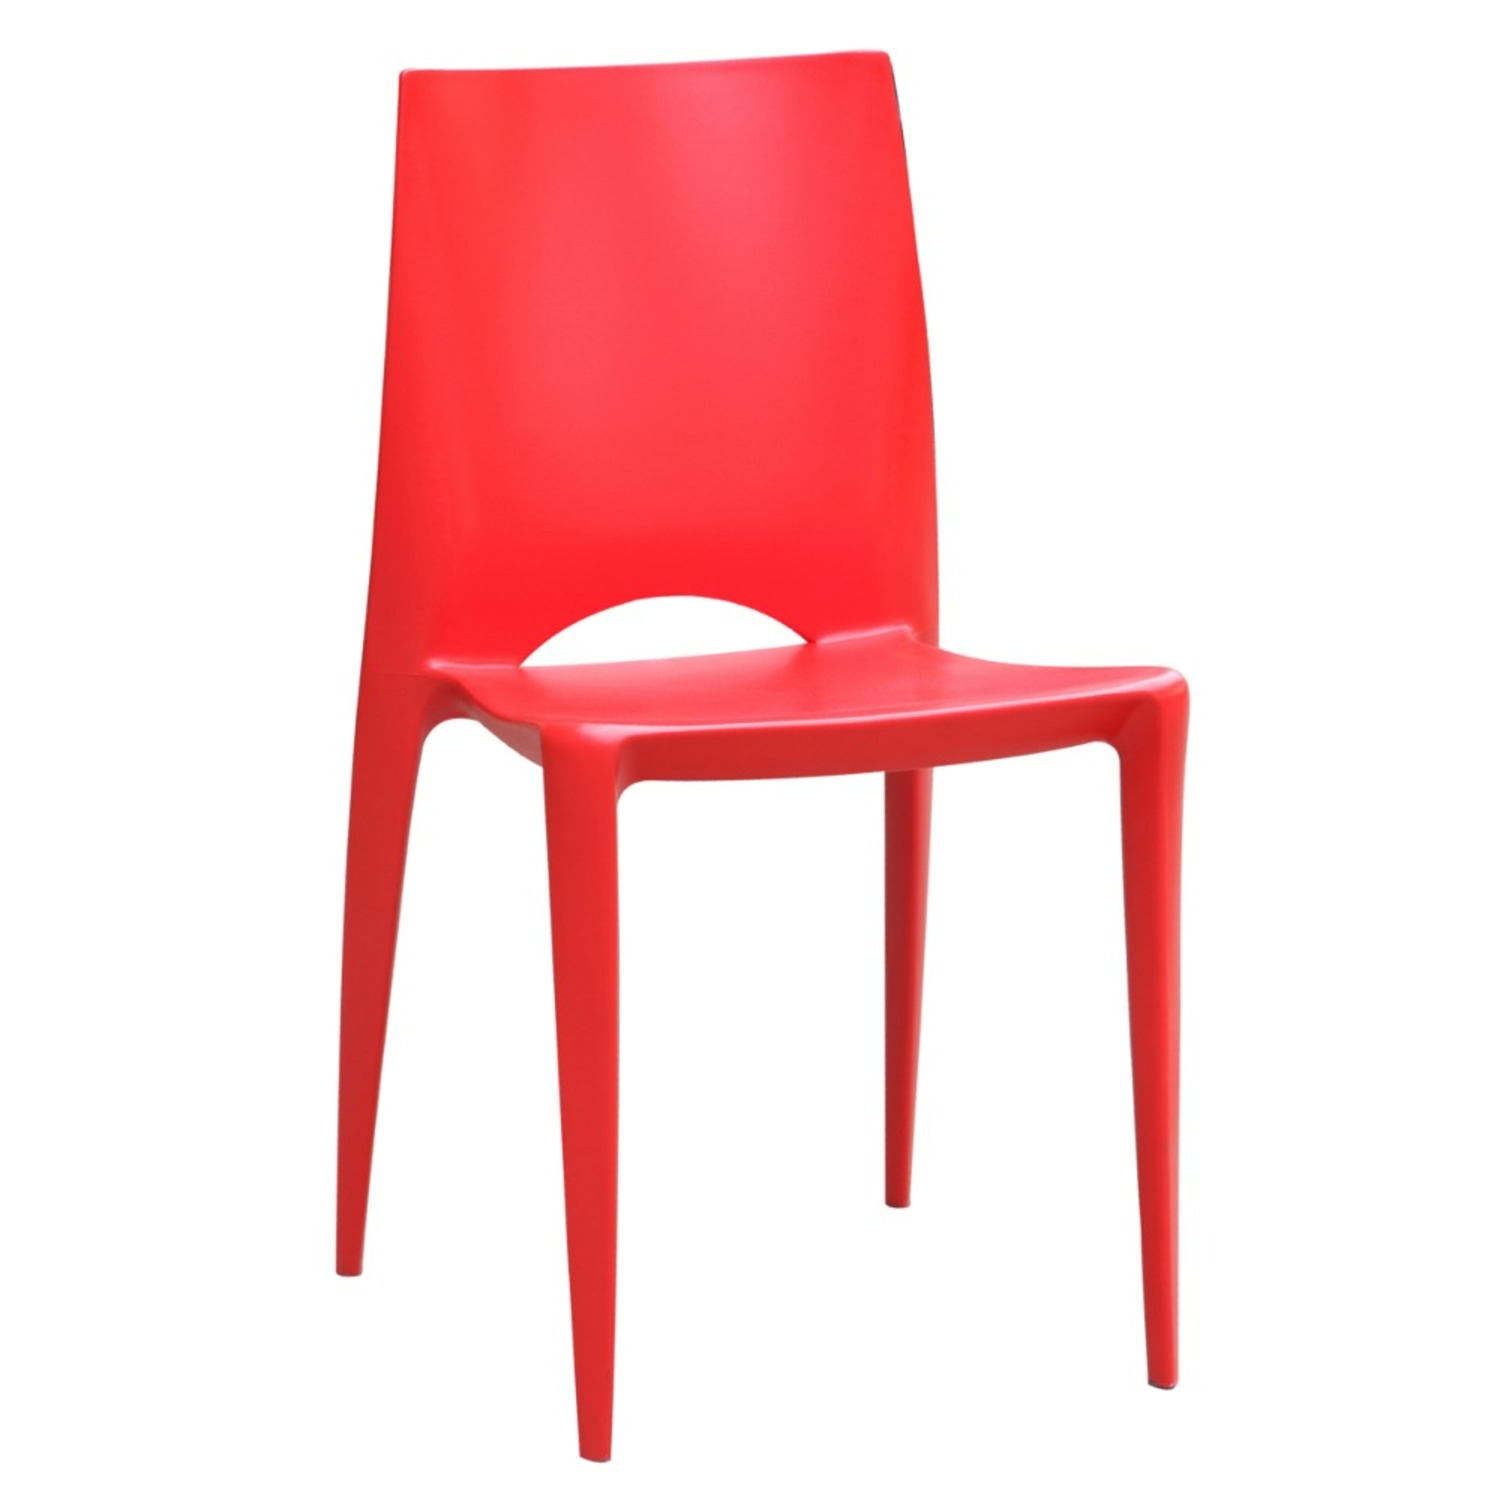 Dining Chair In Square-Shaped Red Finish - image-0